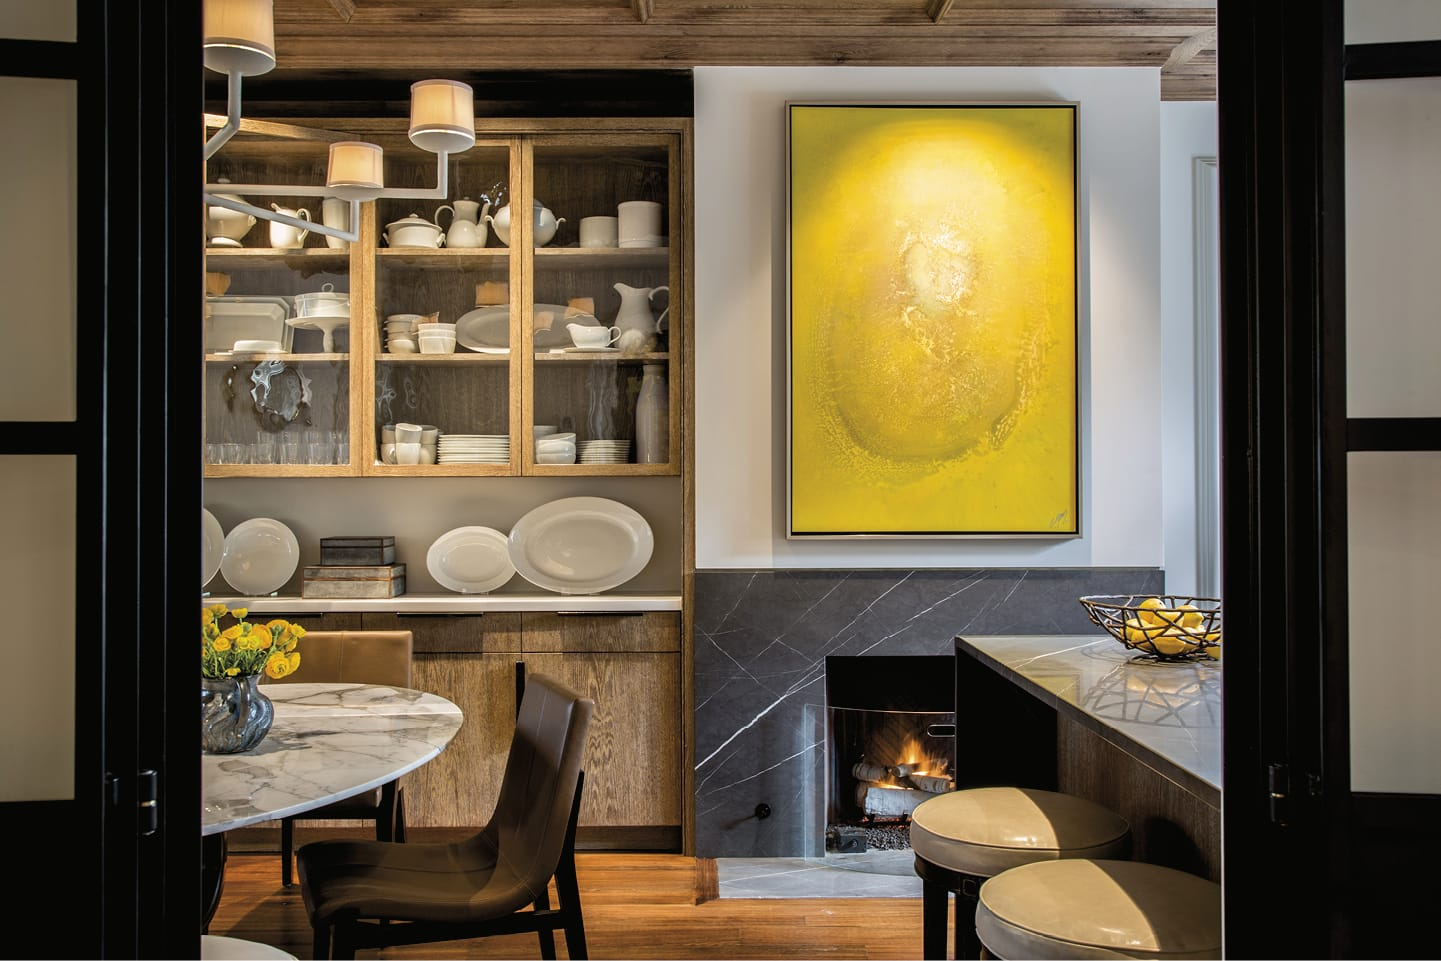 Open kitchen with fireplace and bright abstract painting